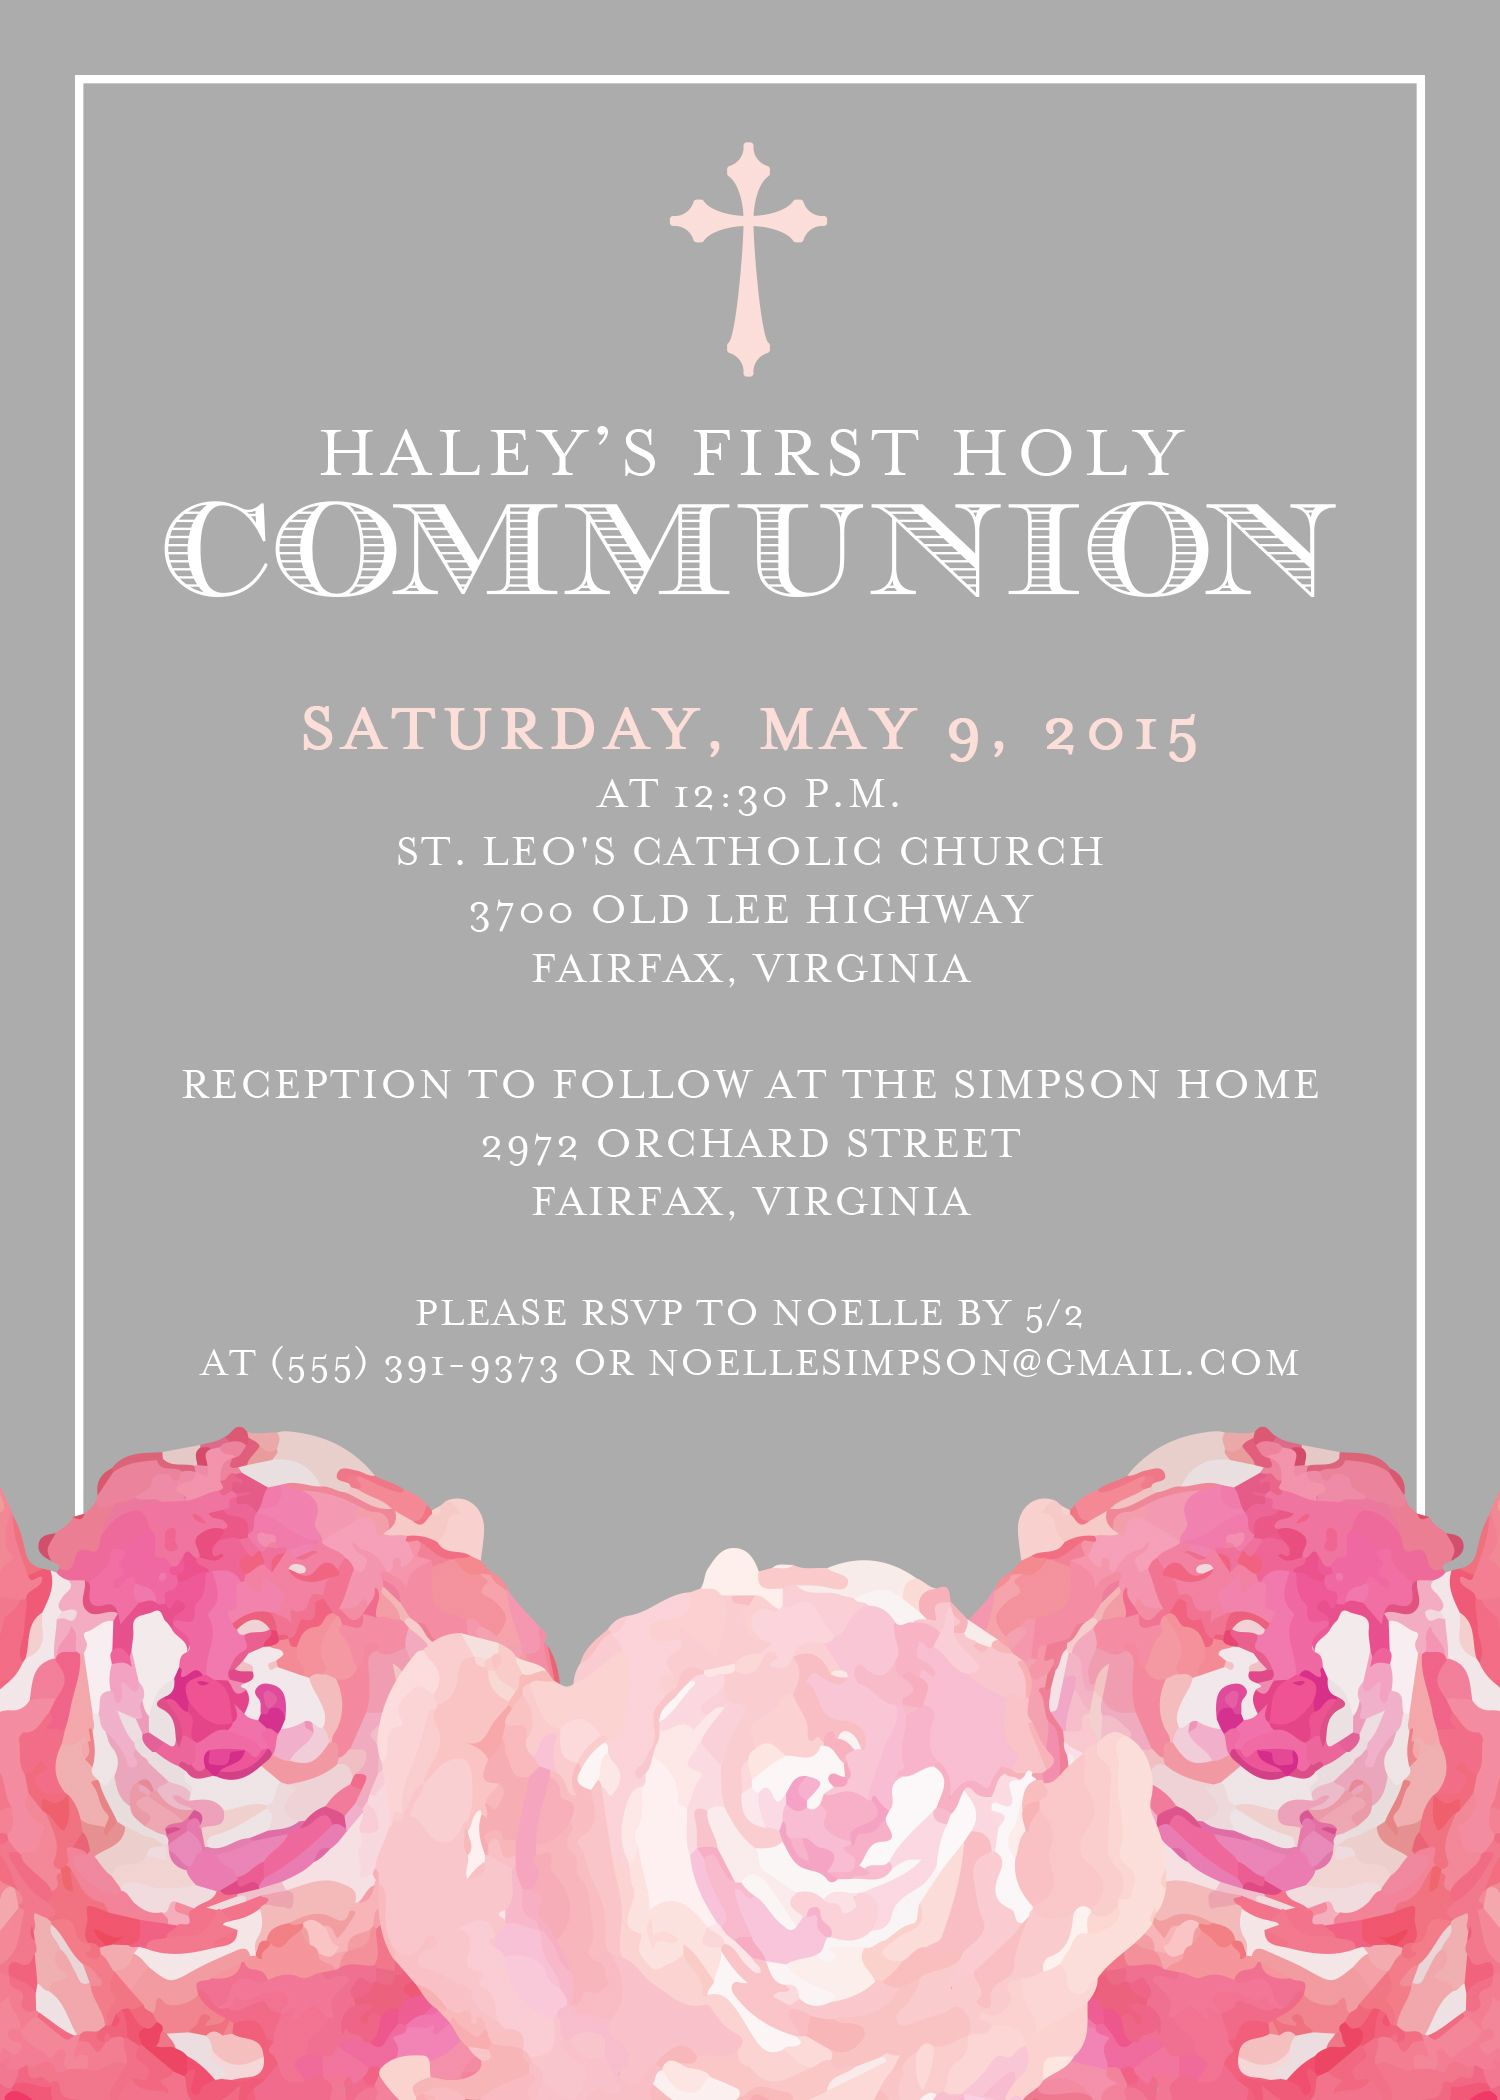 First communion invitation first holy communion invitation first communion invitation from httpreplybyoccasionssy quick turnaround solutioingenieria Choice Image